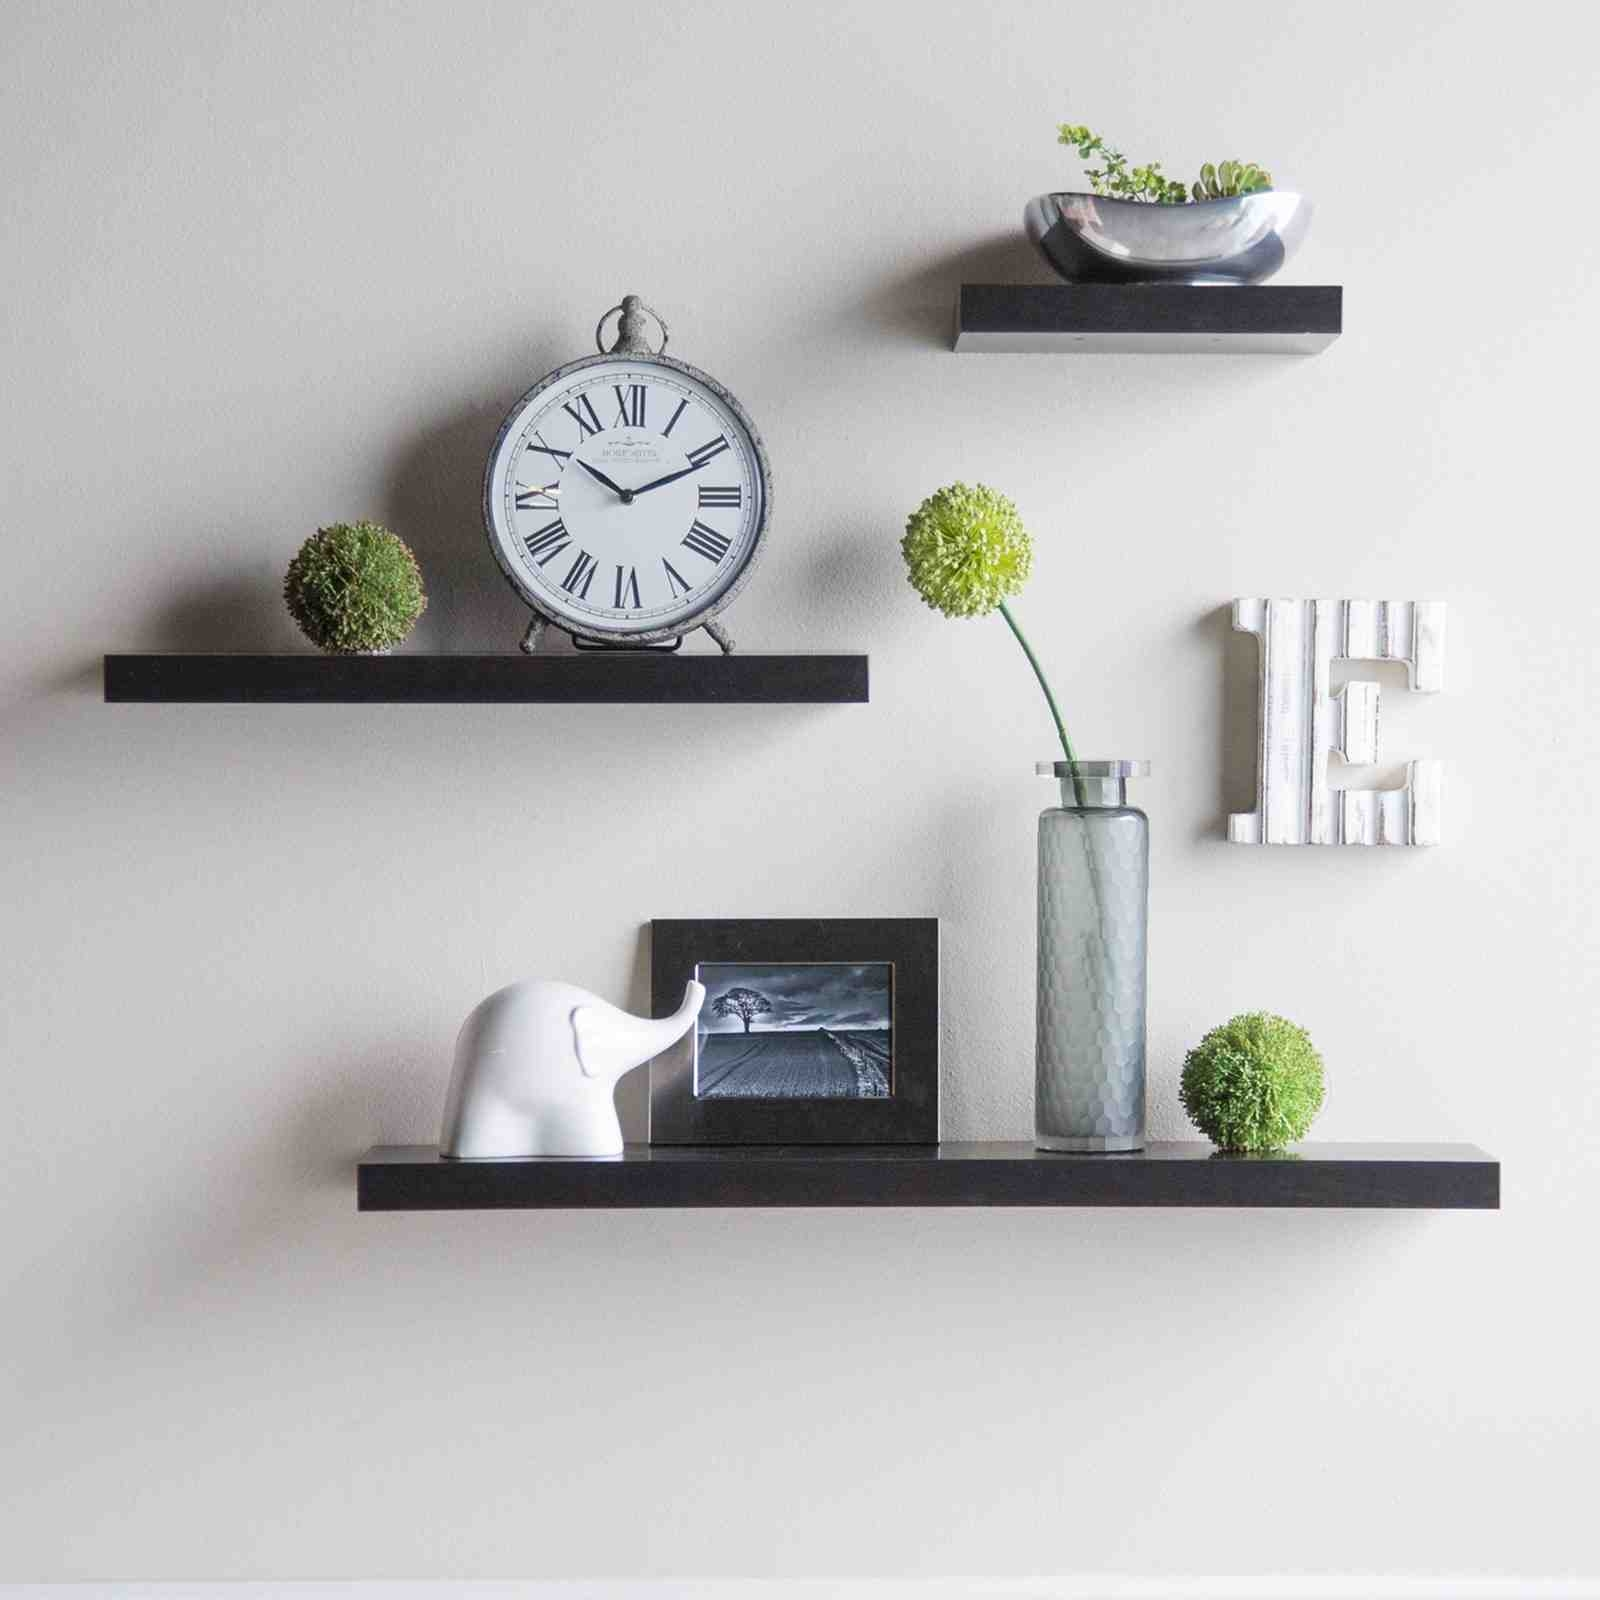 Popular Photo of Floating Wall Shelves